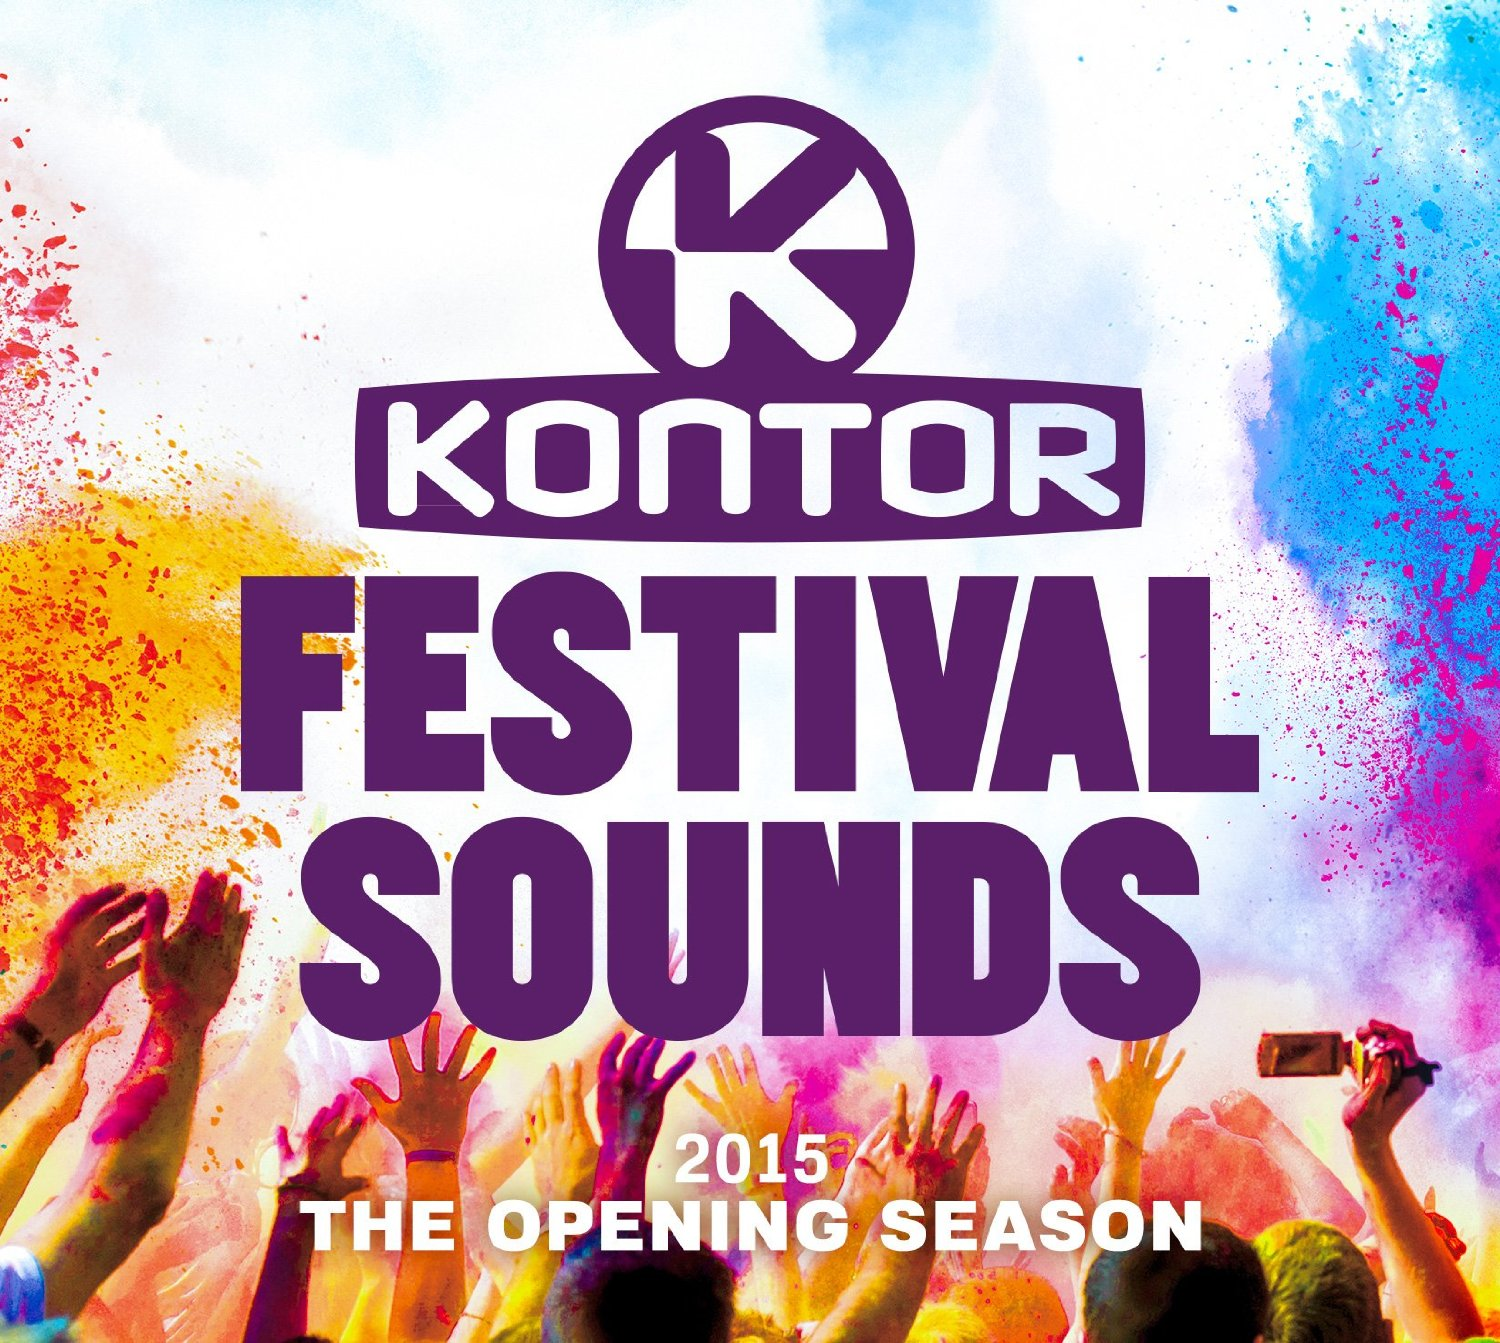 Kontor Festival Sounds - The Opening Season 2015